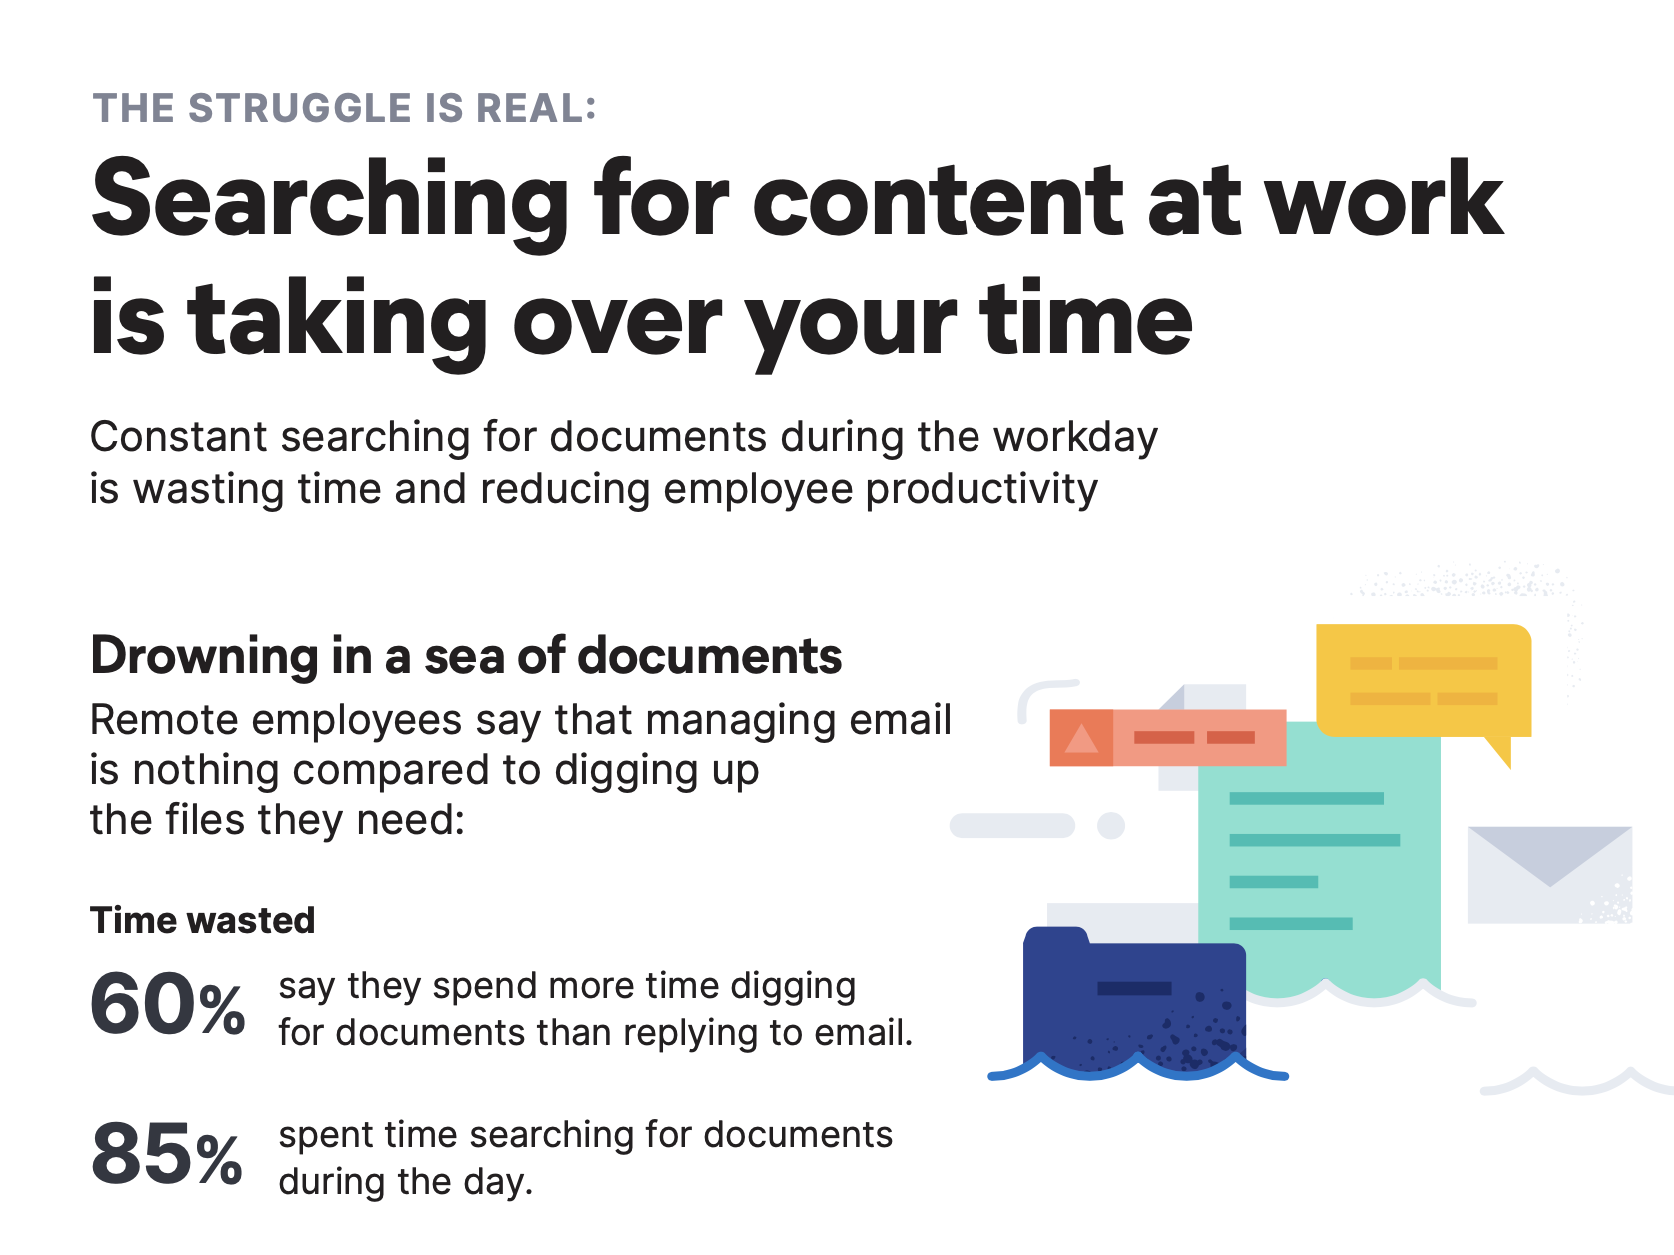 Sixty percent of primarily remote workers said that they spend more time digging for documents than replying to email.